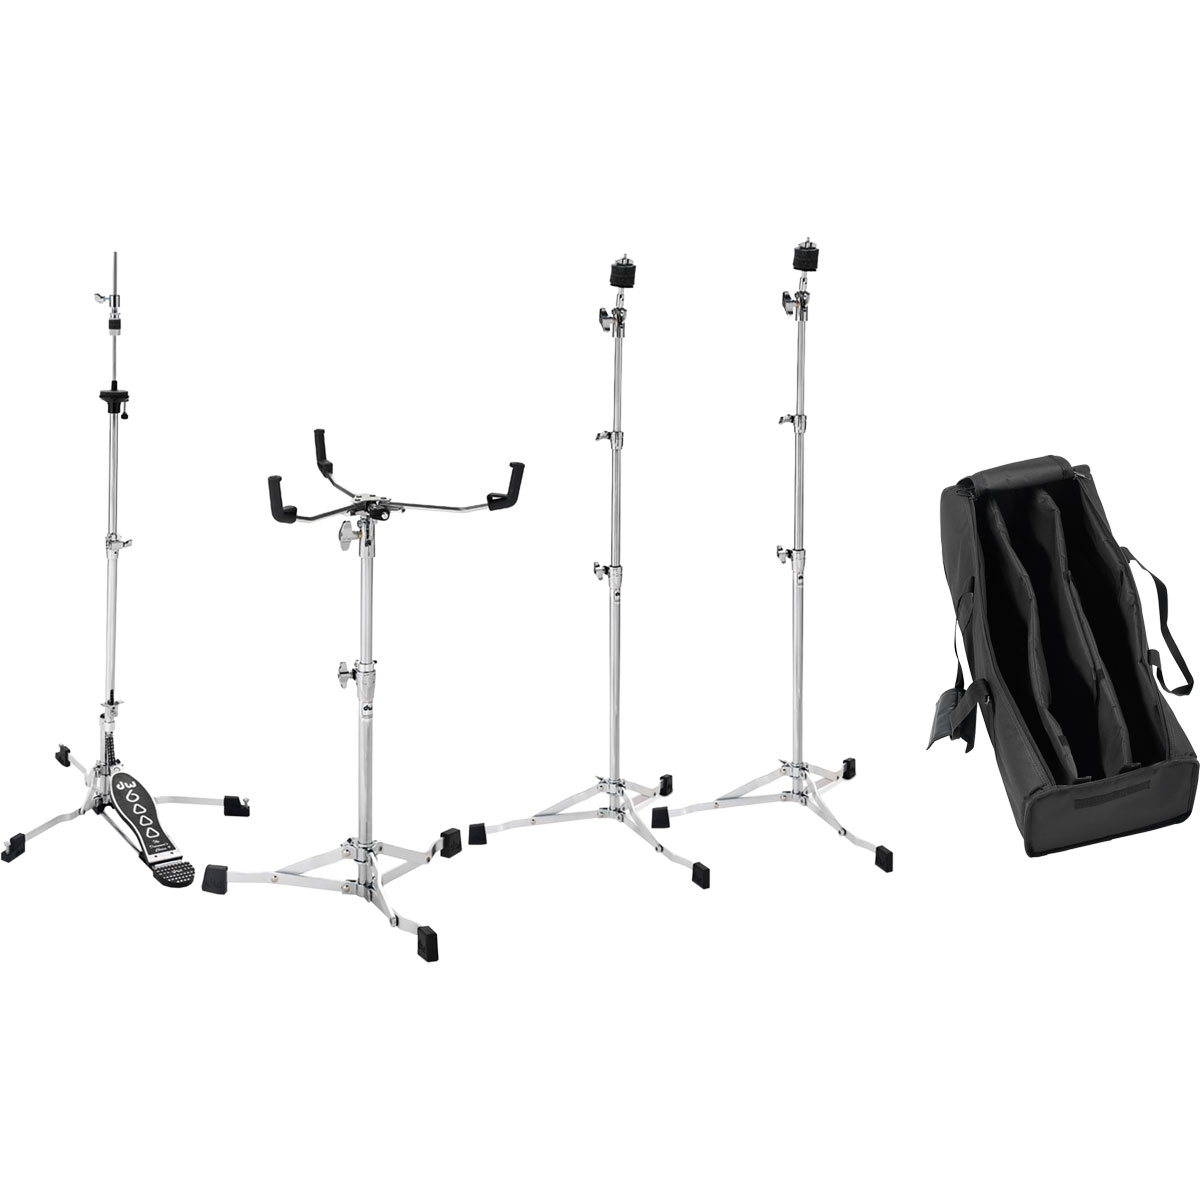 DW 6000 Series Ultralight Drum Set Hardware Pack with Bag